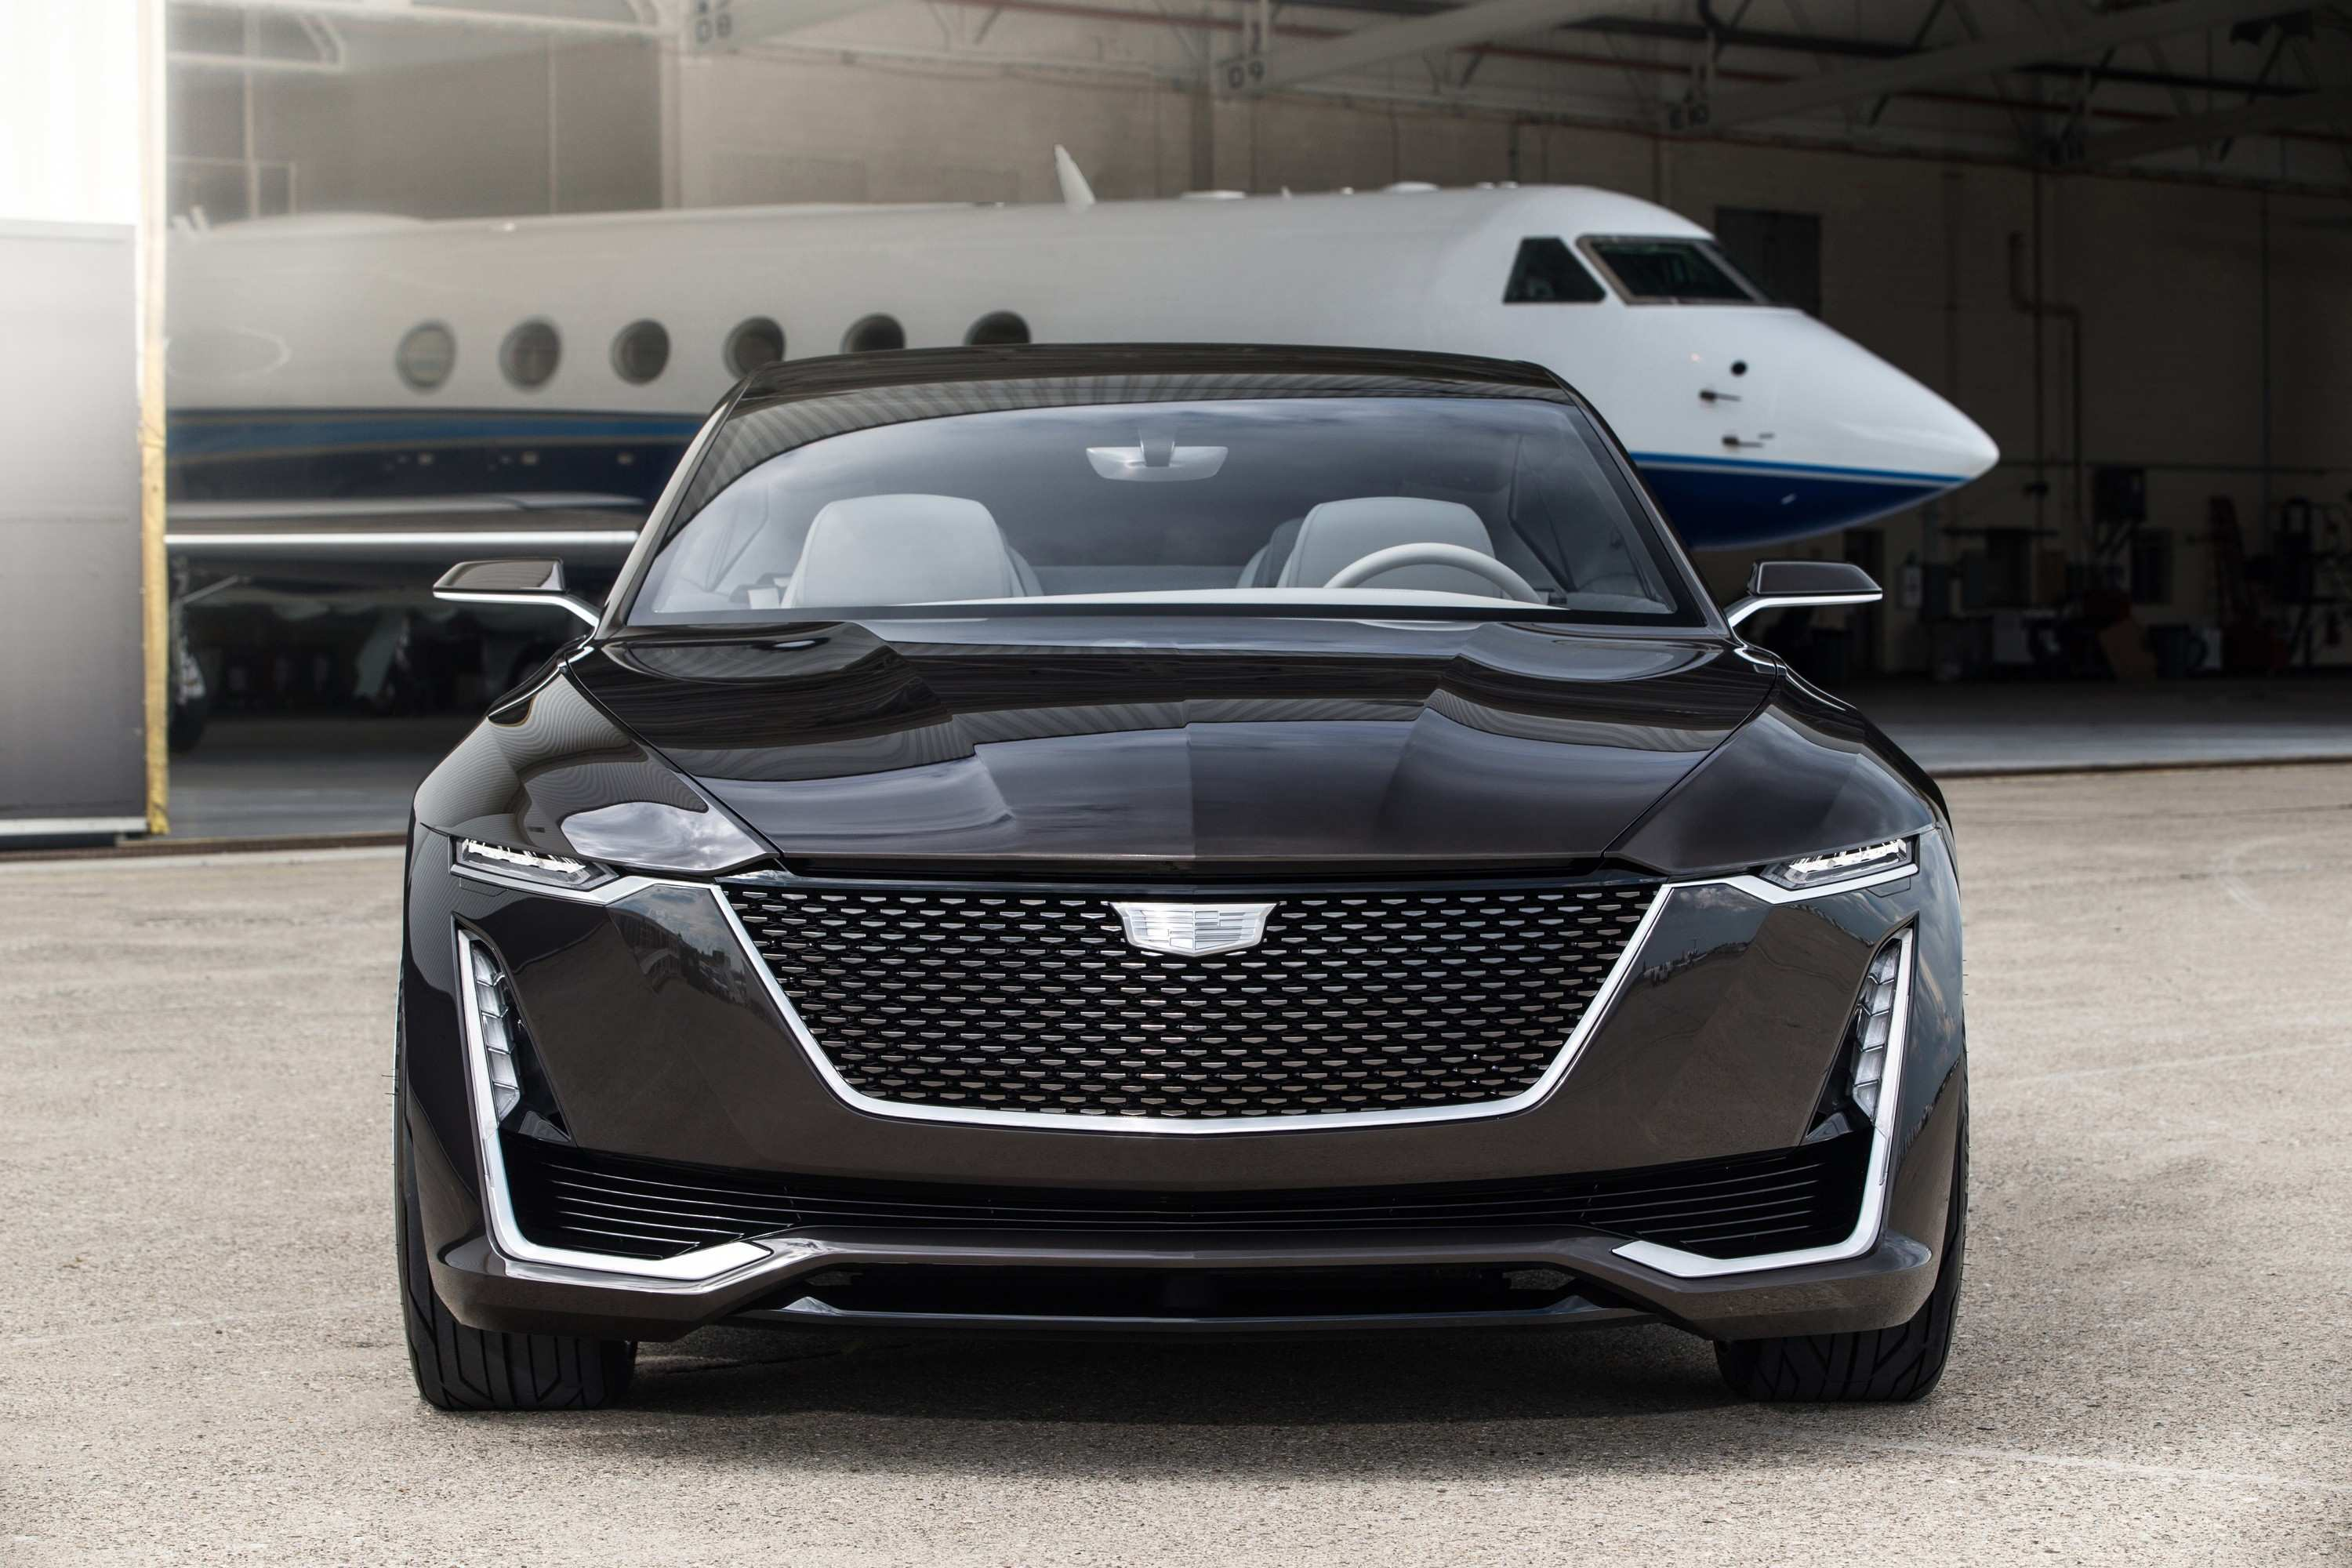 54 New Cadillac Cts V 2020 Performance and New Engine with Cadillac Cts V 2020